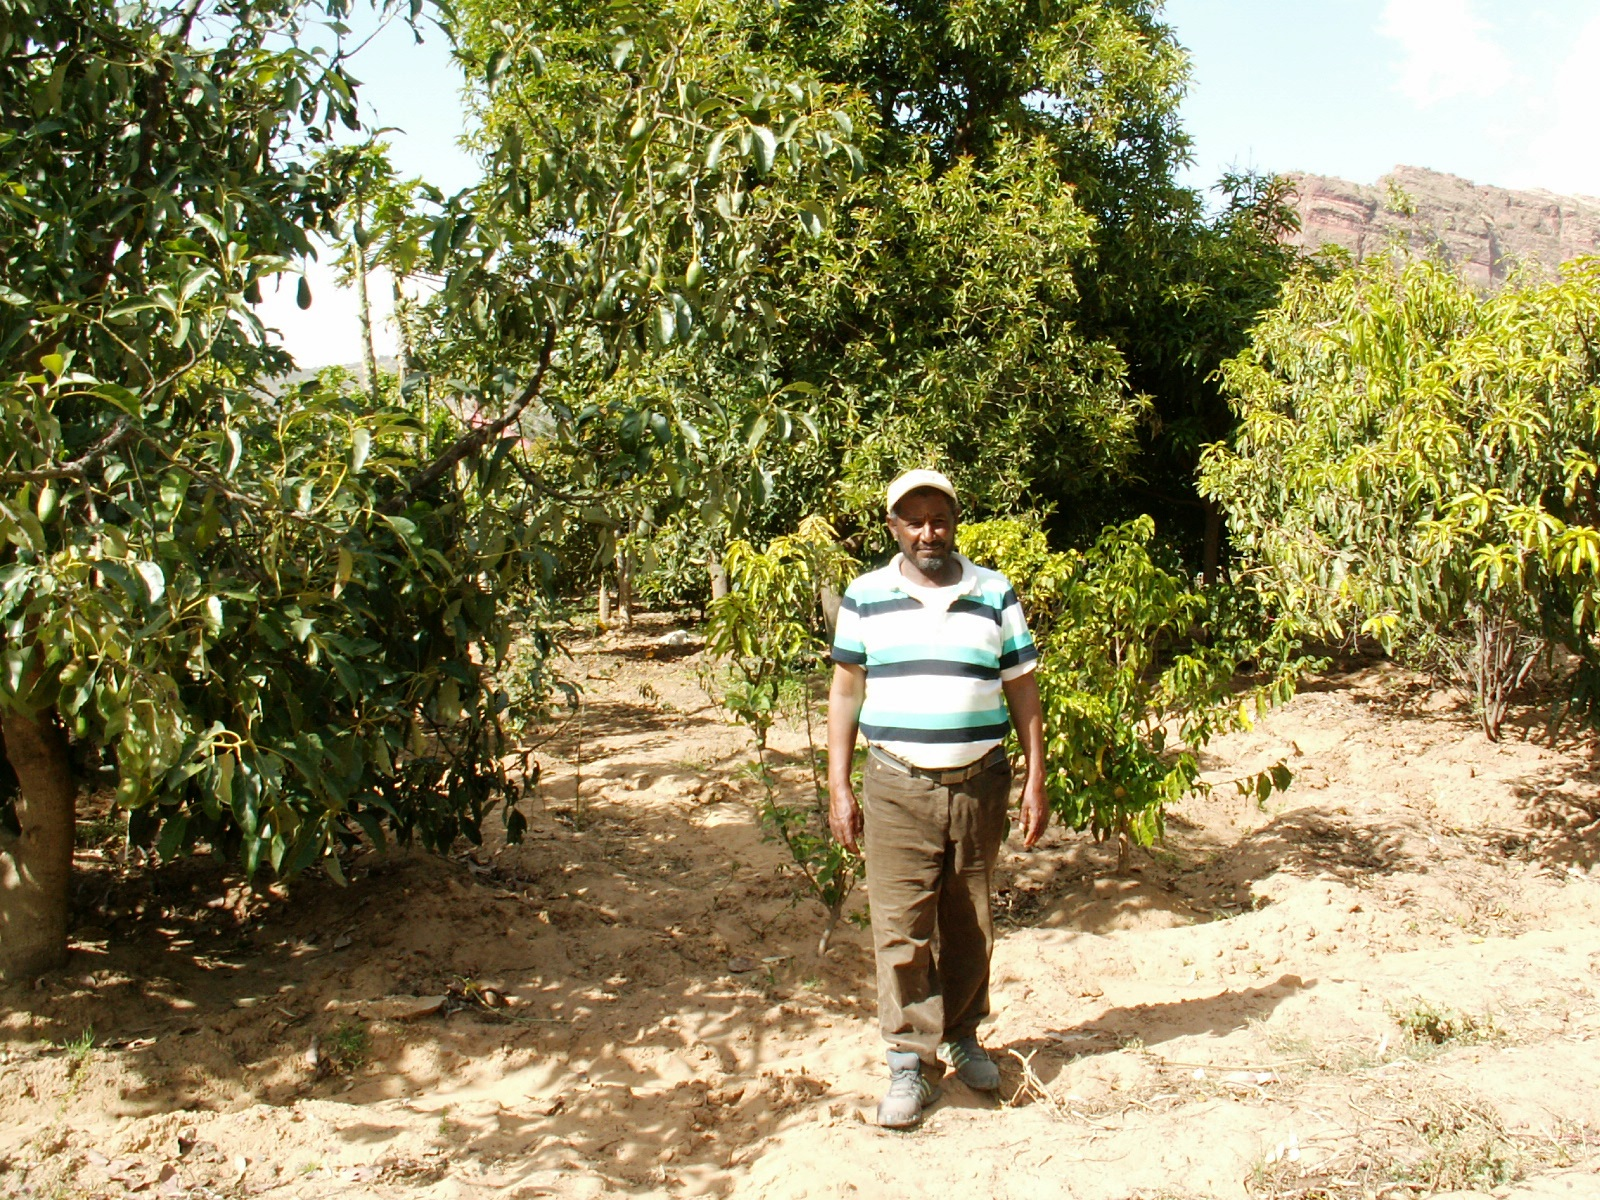 <p>Village leader Aba Hawi in his irrigated orchard in Tigray. Photo by Chris Reij/WRI</p>